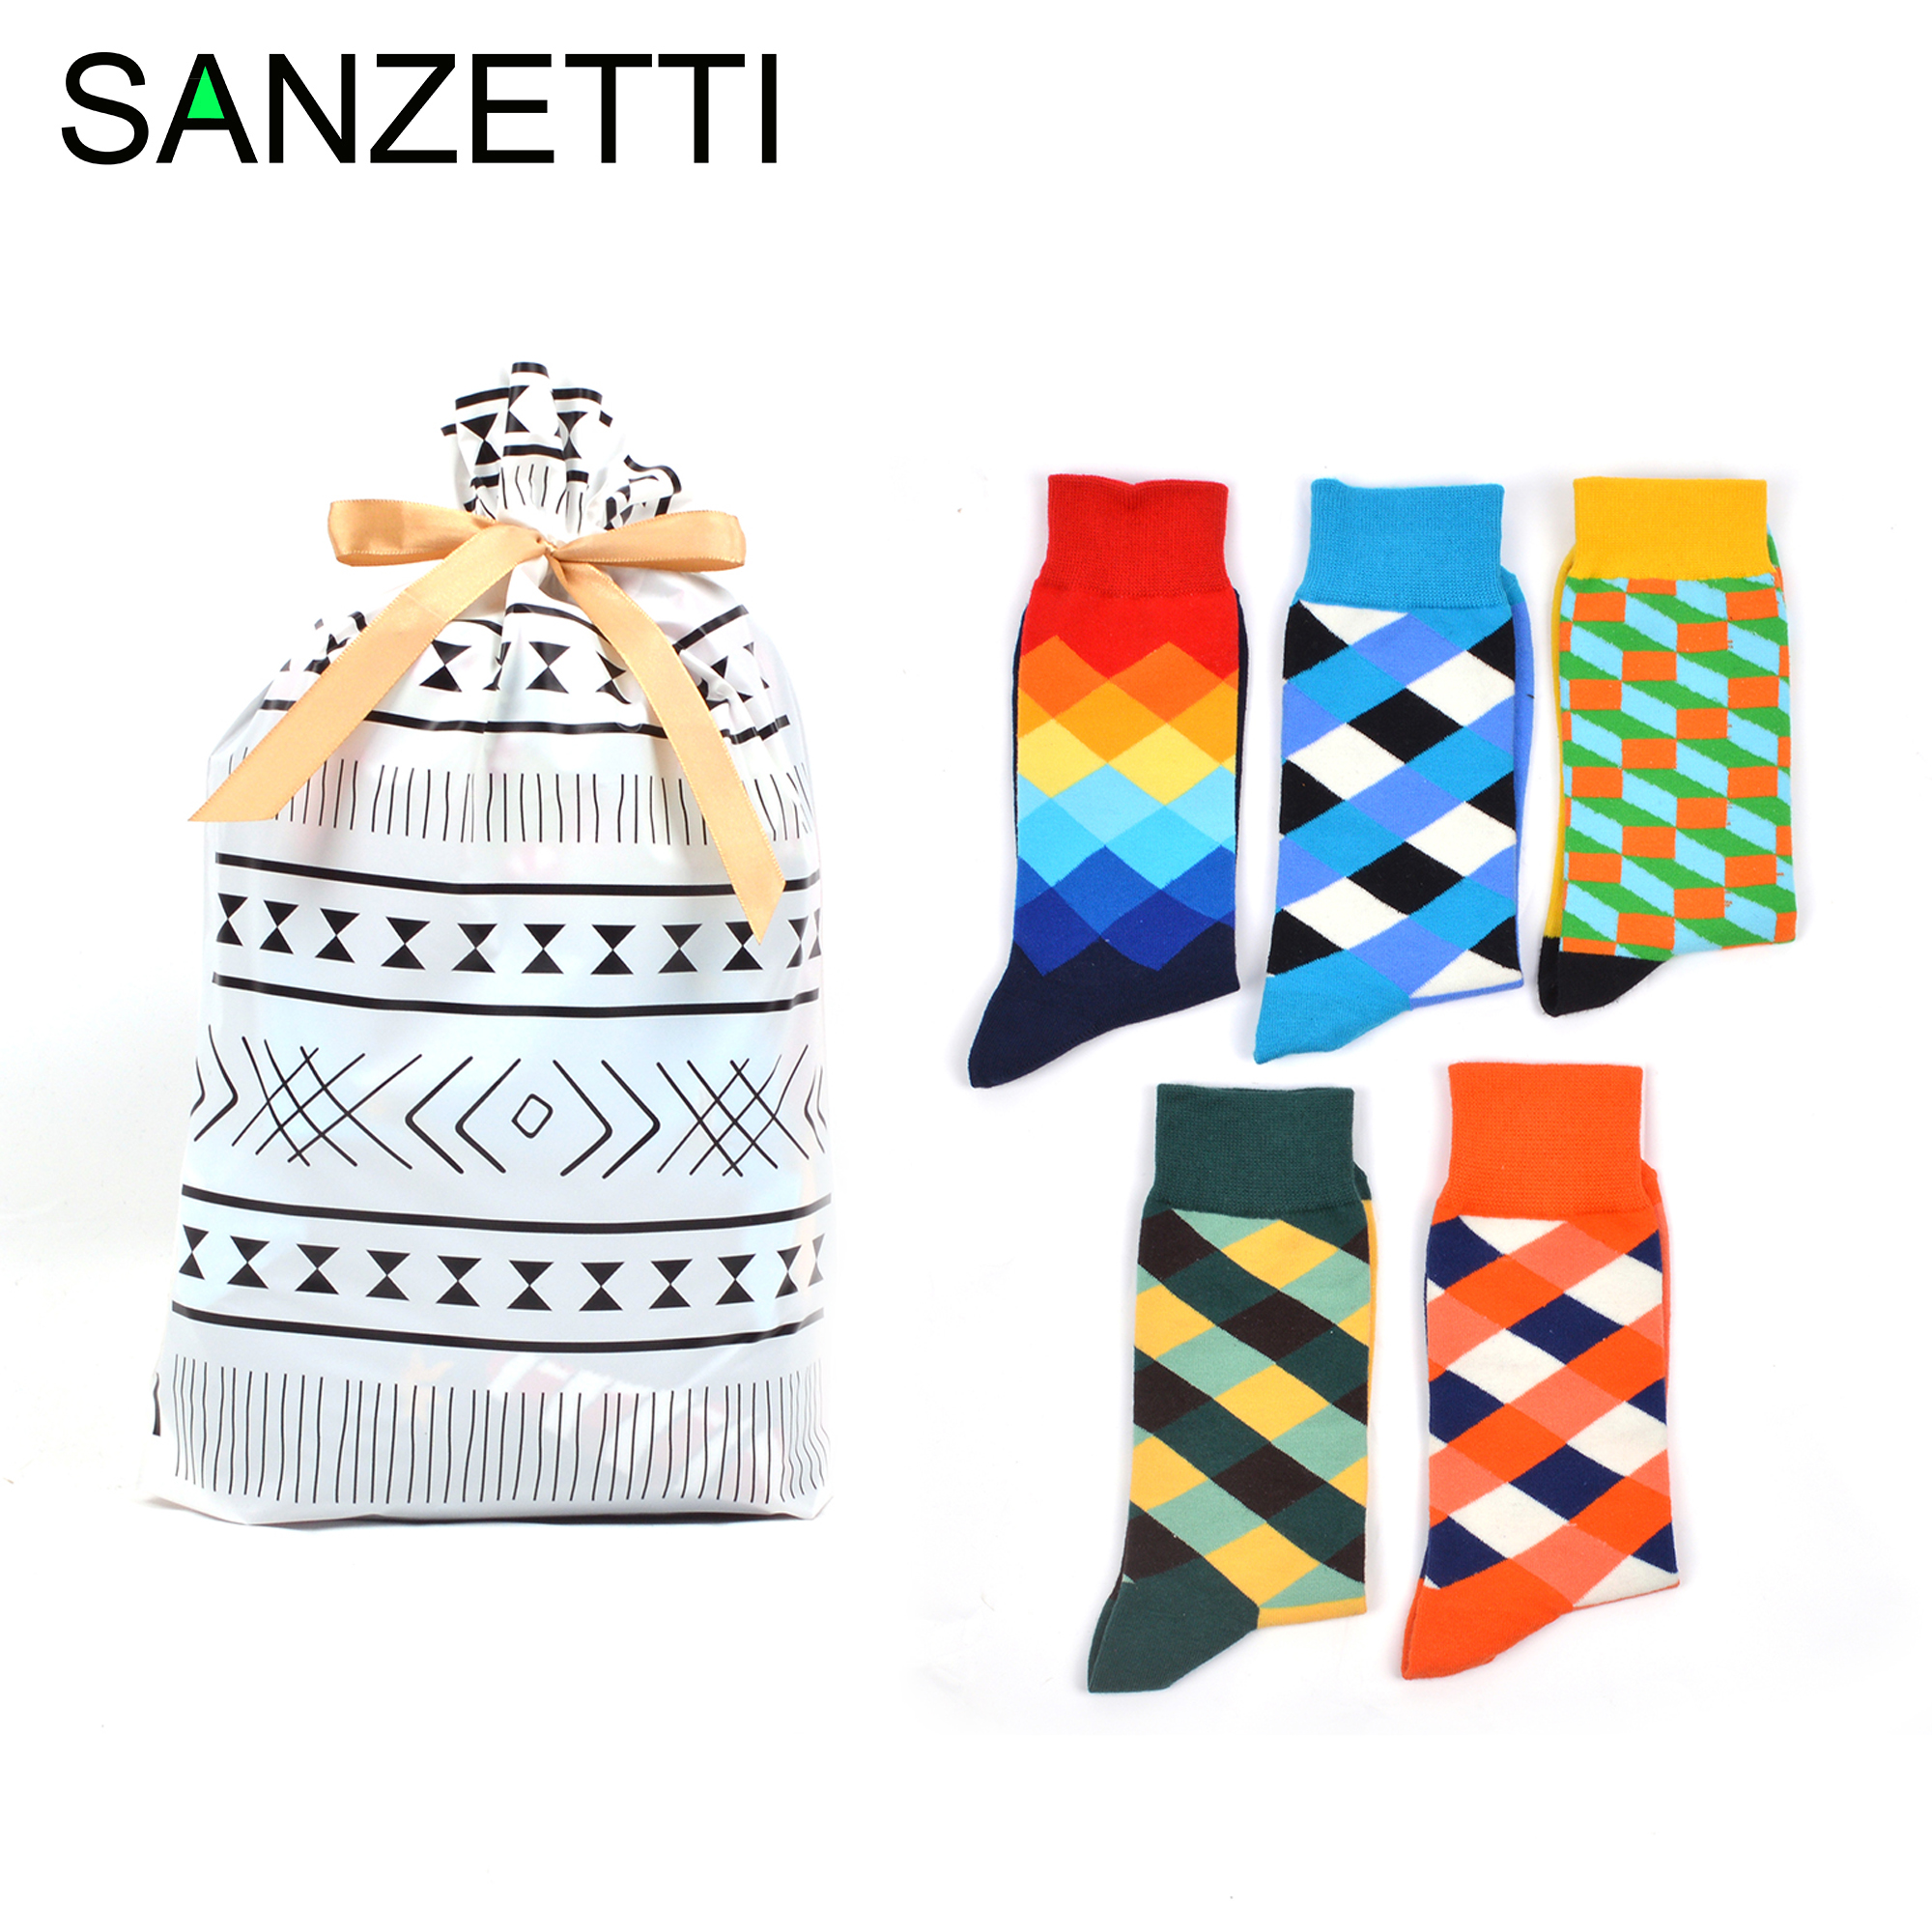 SANZETTI 5 Pairs Men's Combed Cotton Socks Geometric Pattern Sport Funny Hip Hop Colorful Wedding Exquisite Gift Bag Gift Socks